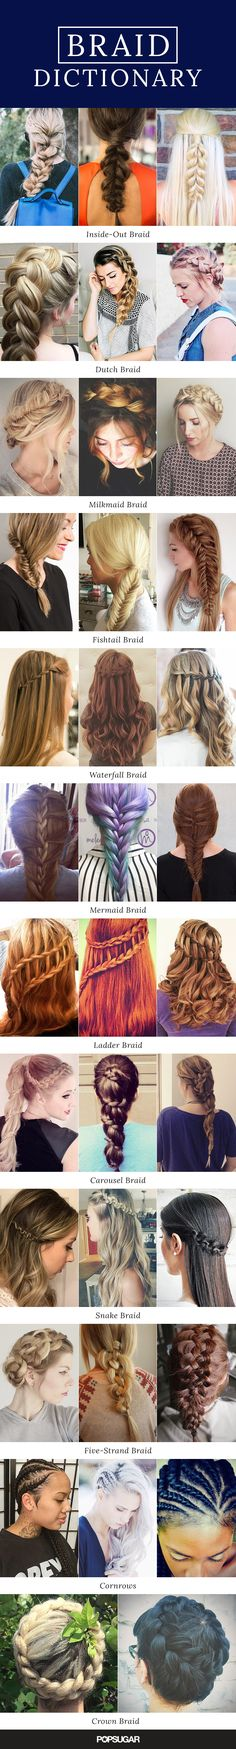 There are so many different braids out there — how many can you create? Everyone wants to master the new trendy style before a new one is invented. So, we've broken down every kind of plait (with gorgeous real-girl pictures and tutorials) for hairstyle inspiration. See photos of inside-out braids, dutch braids, milkmaid braids, fishtail braids, waterfall braids, mermaid braids, ladder braids, carousel braids, snake braids, five-strand braids, cornrows, and crown braids. Plaits, Hair Ideas, Cool Hairstyles, Nice Braids, Fine Hairstyles, Cornrows, Fancy Hairstyles, Swag Hairstyles, Braid Hair Styles